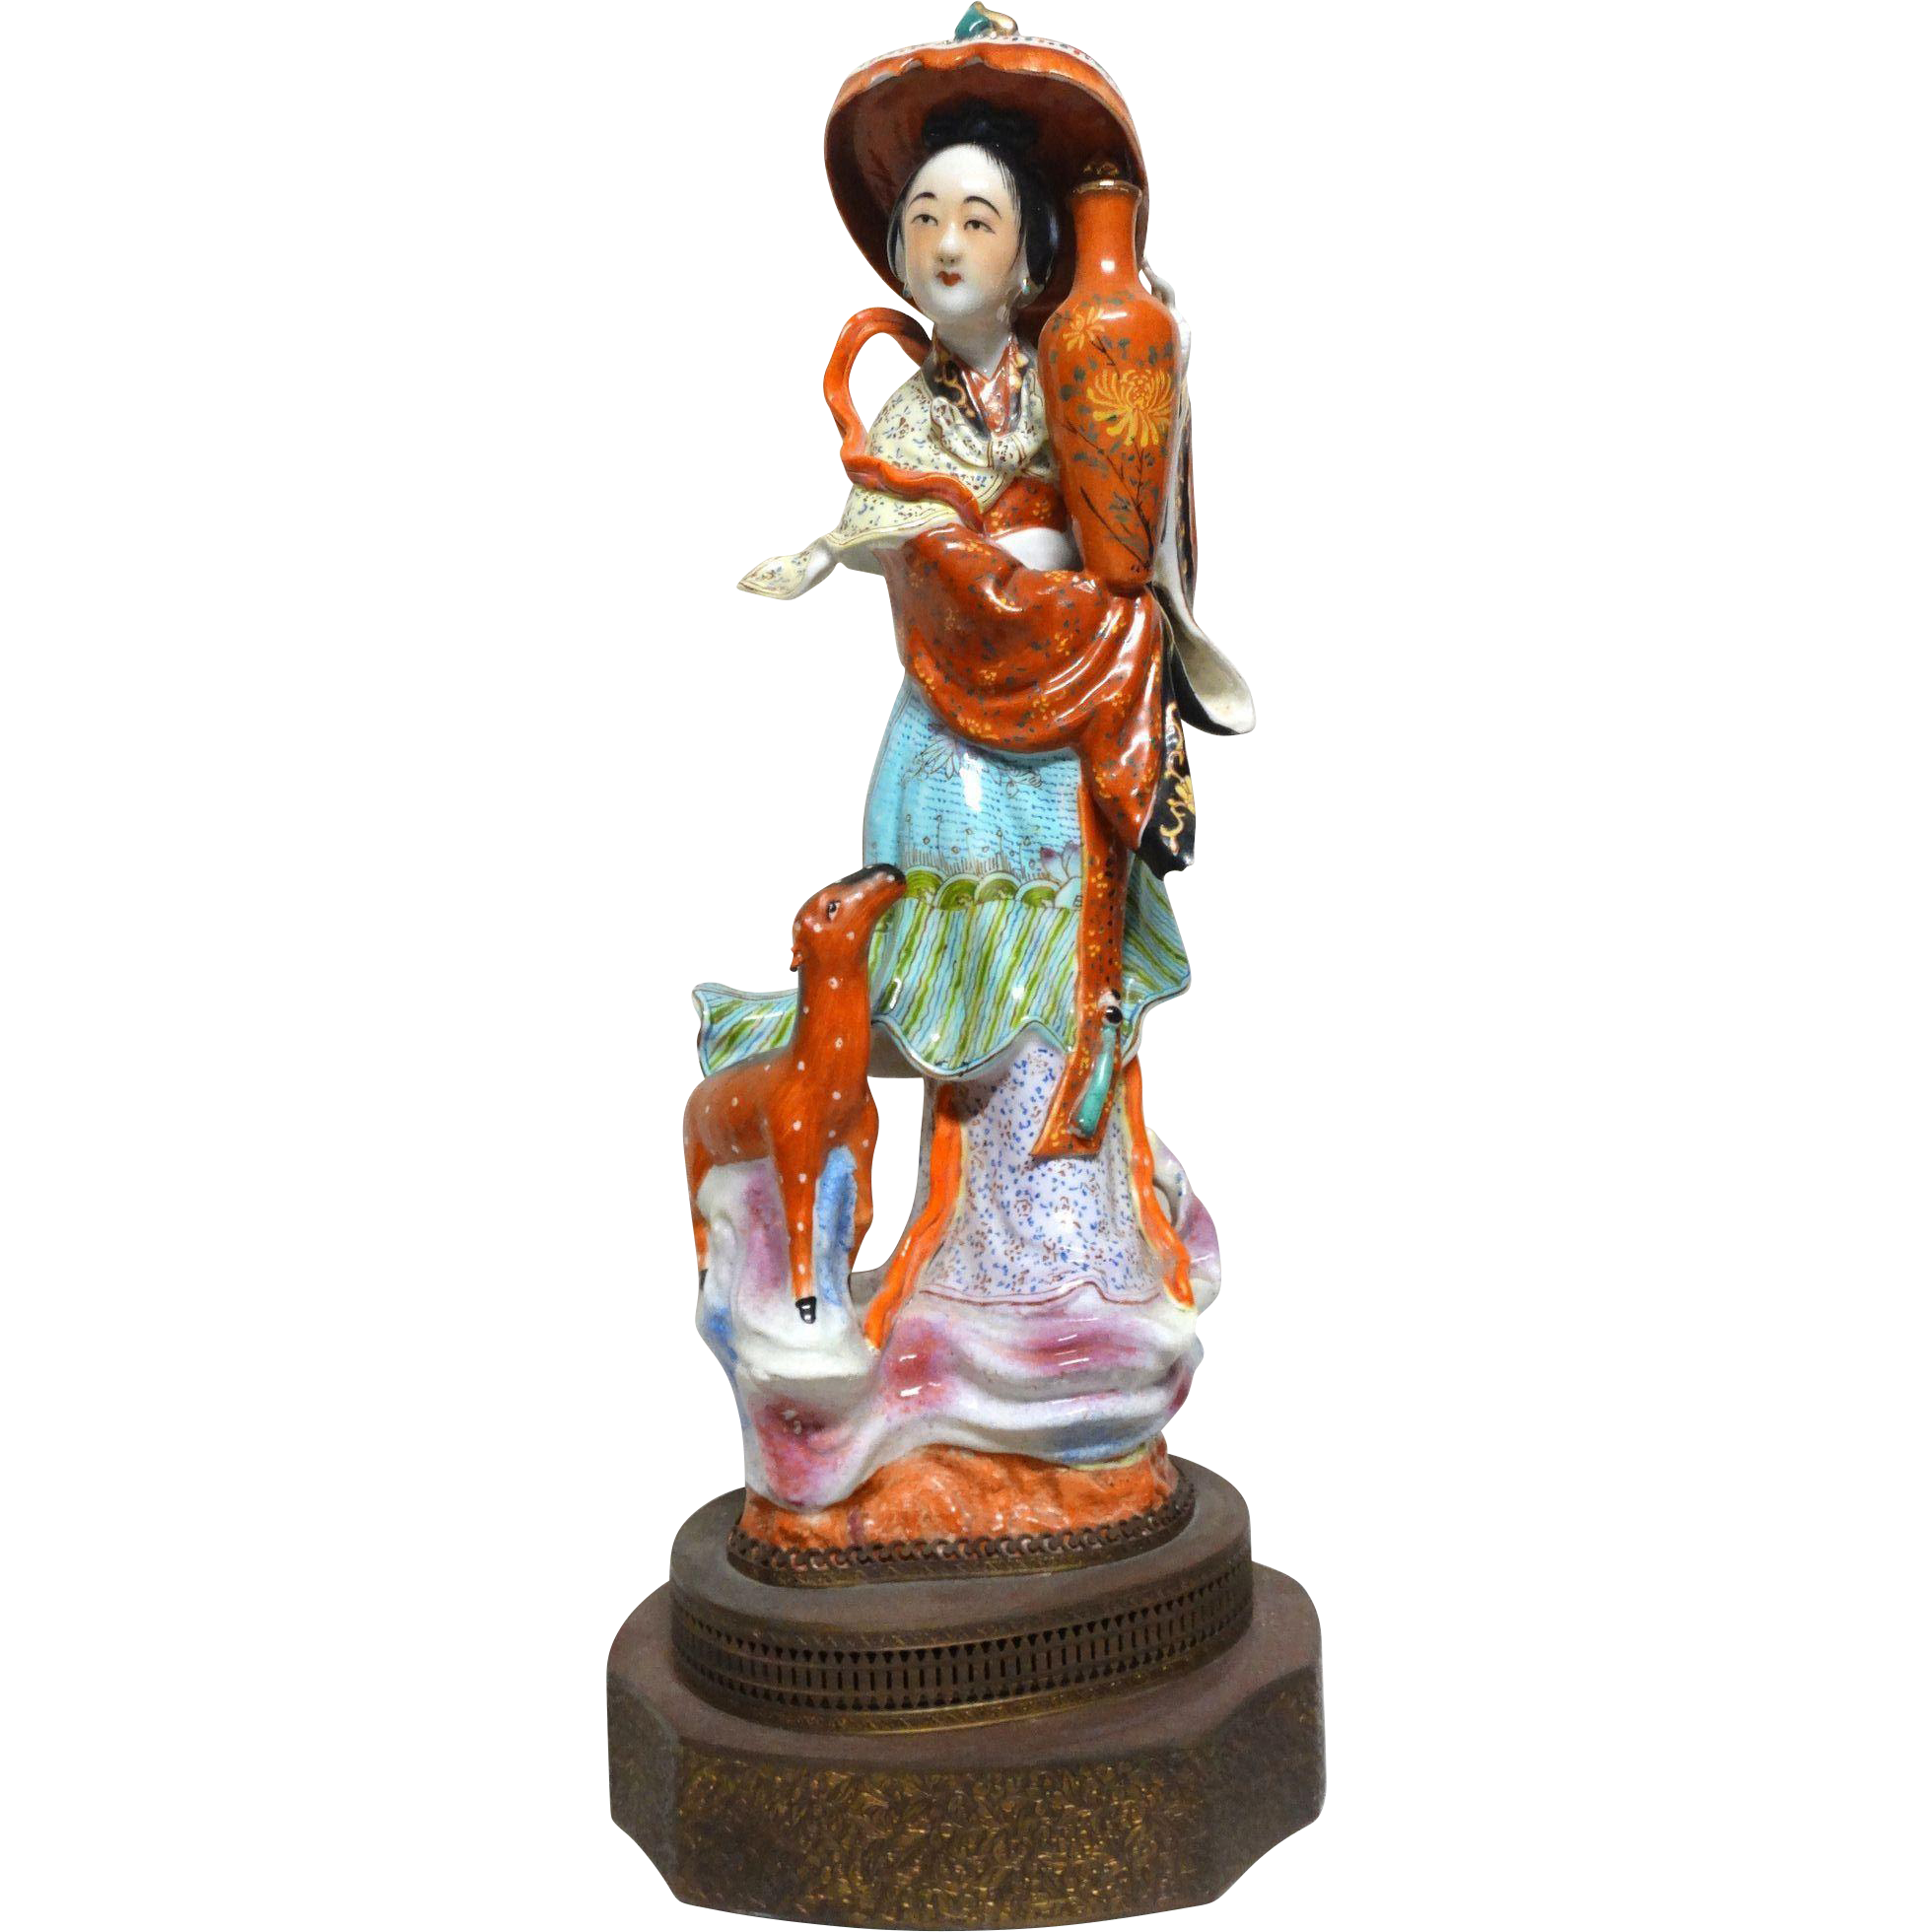 Large Chinese Porcelain Of A Goddess of Longevity,  Holding A Vase, With A Deer Next To Her